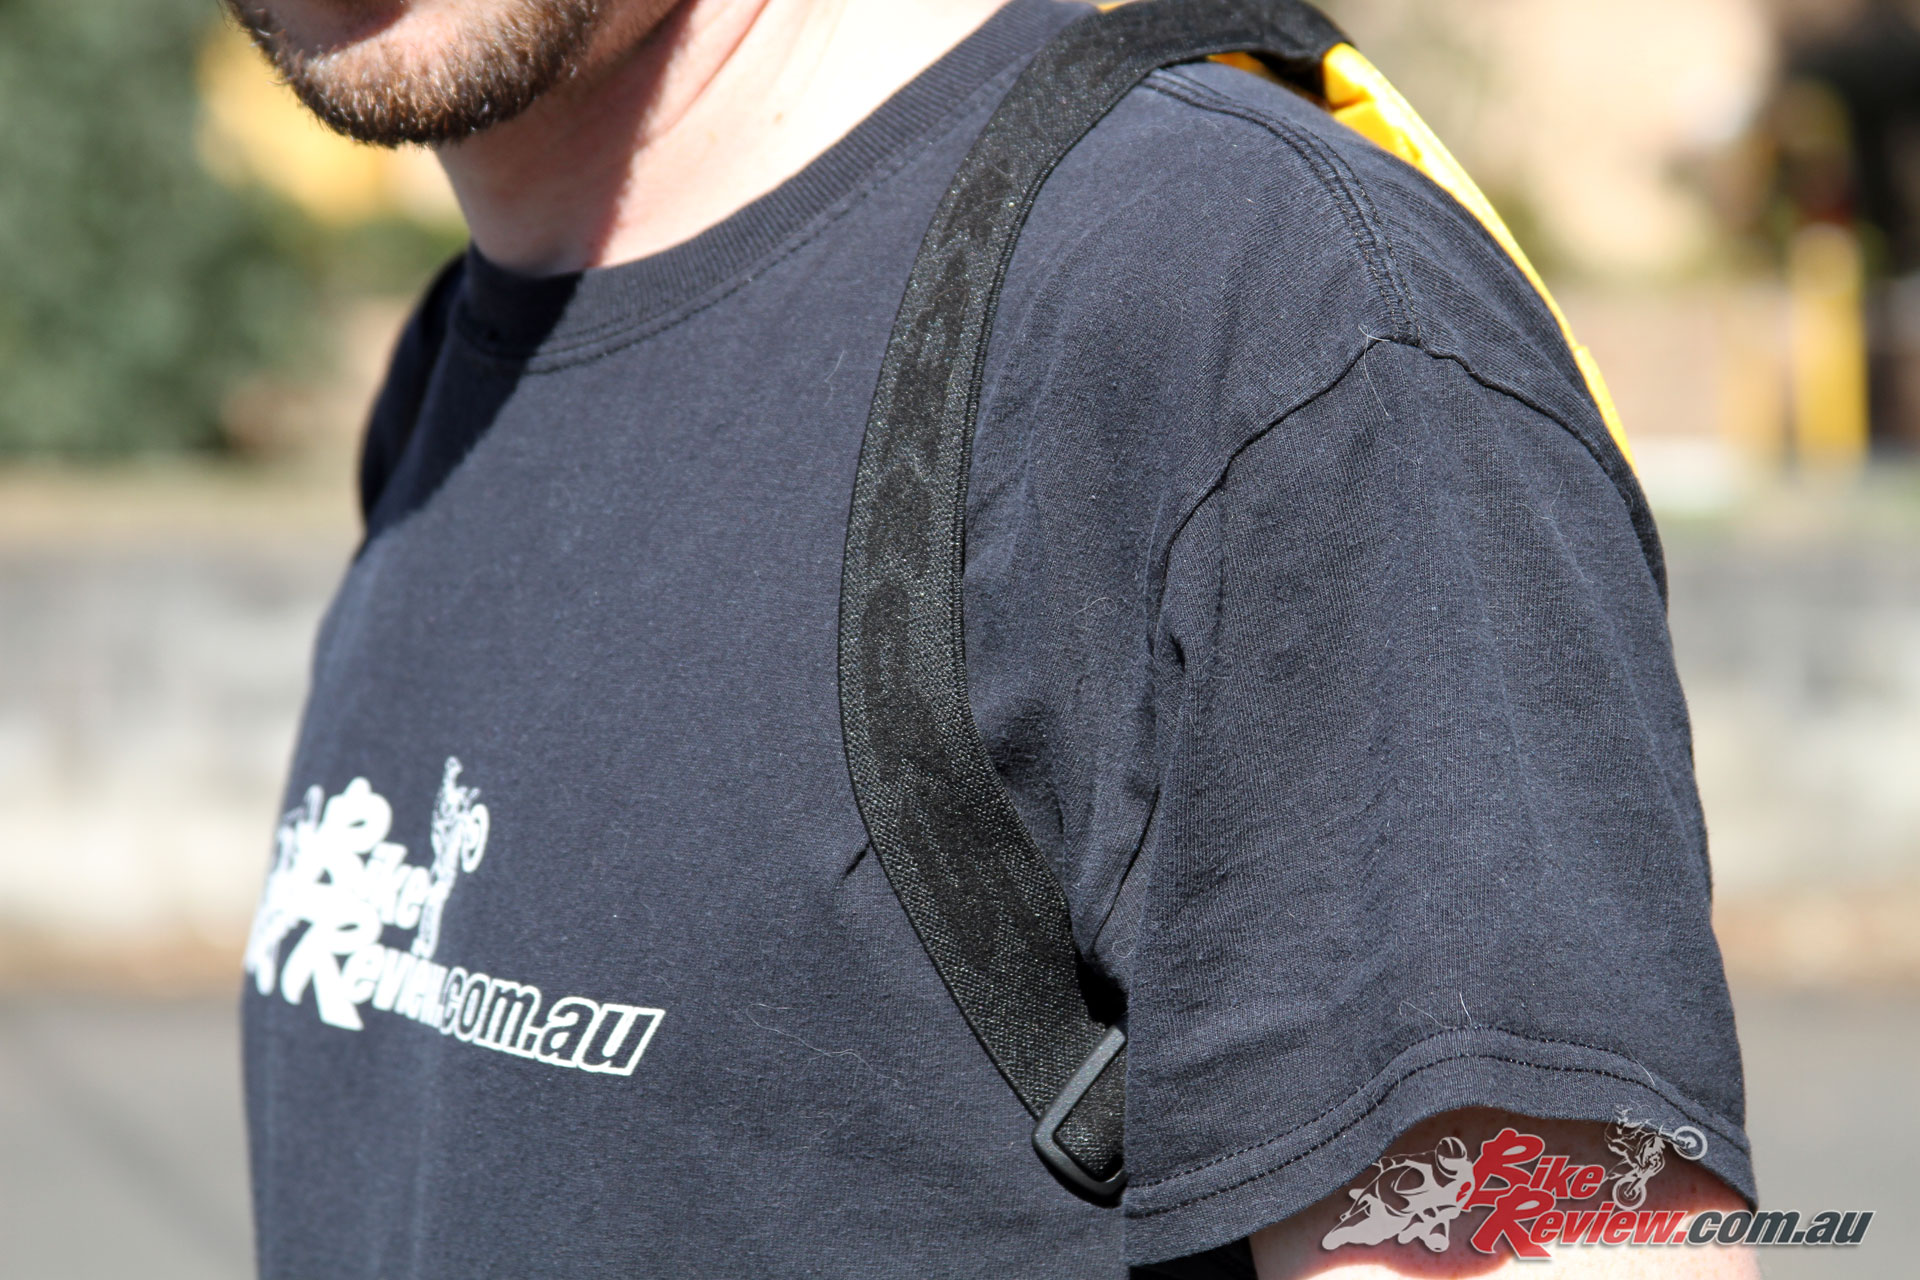 The Spidi Back Warrior EVO shoulder straps are ideal for comfort and are adjustable with a buckle